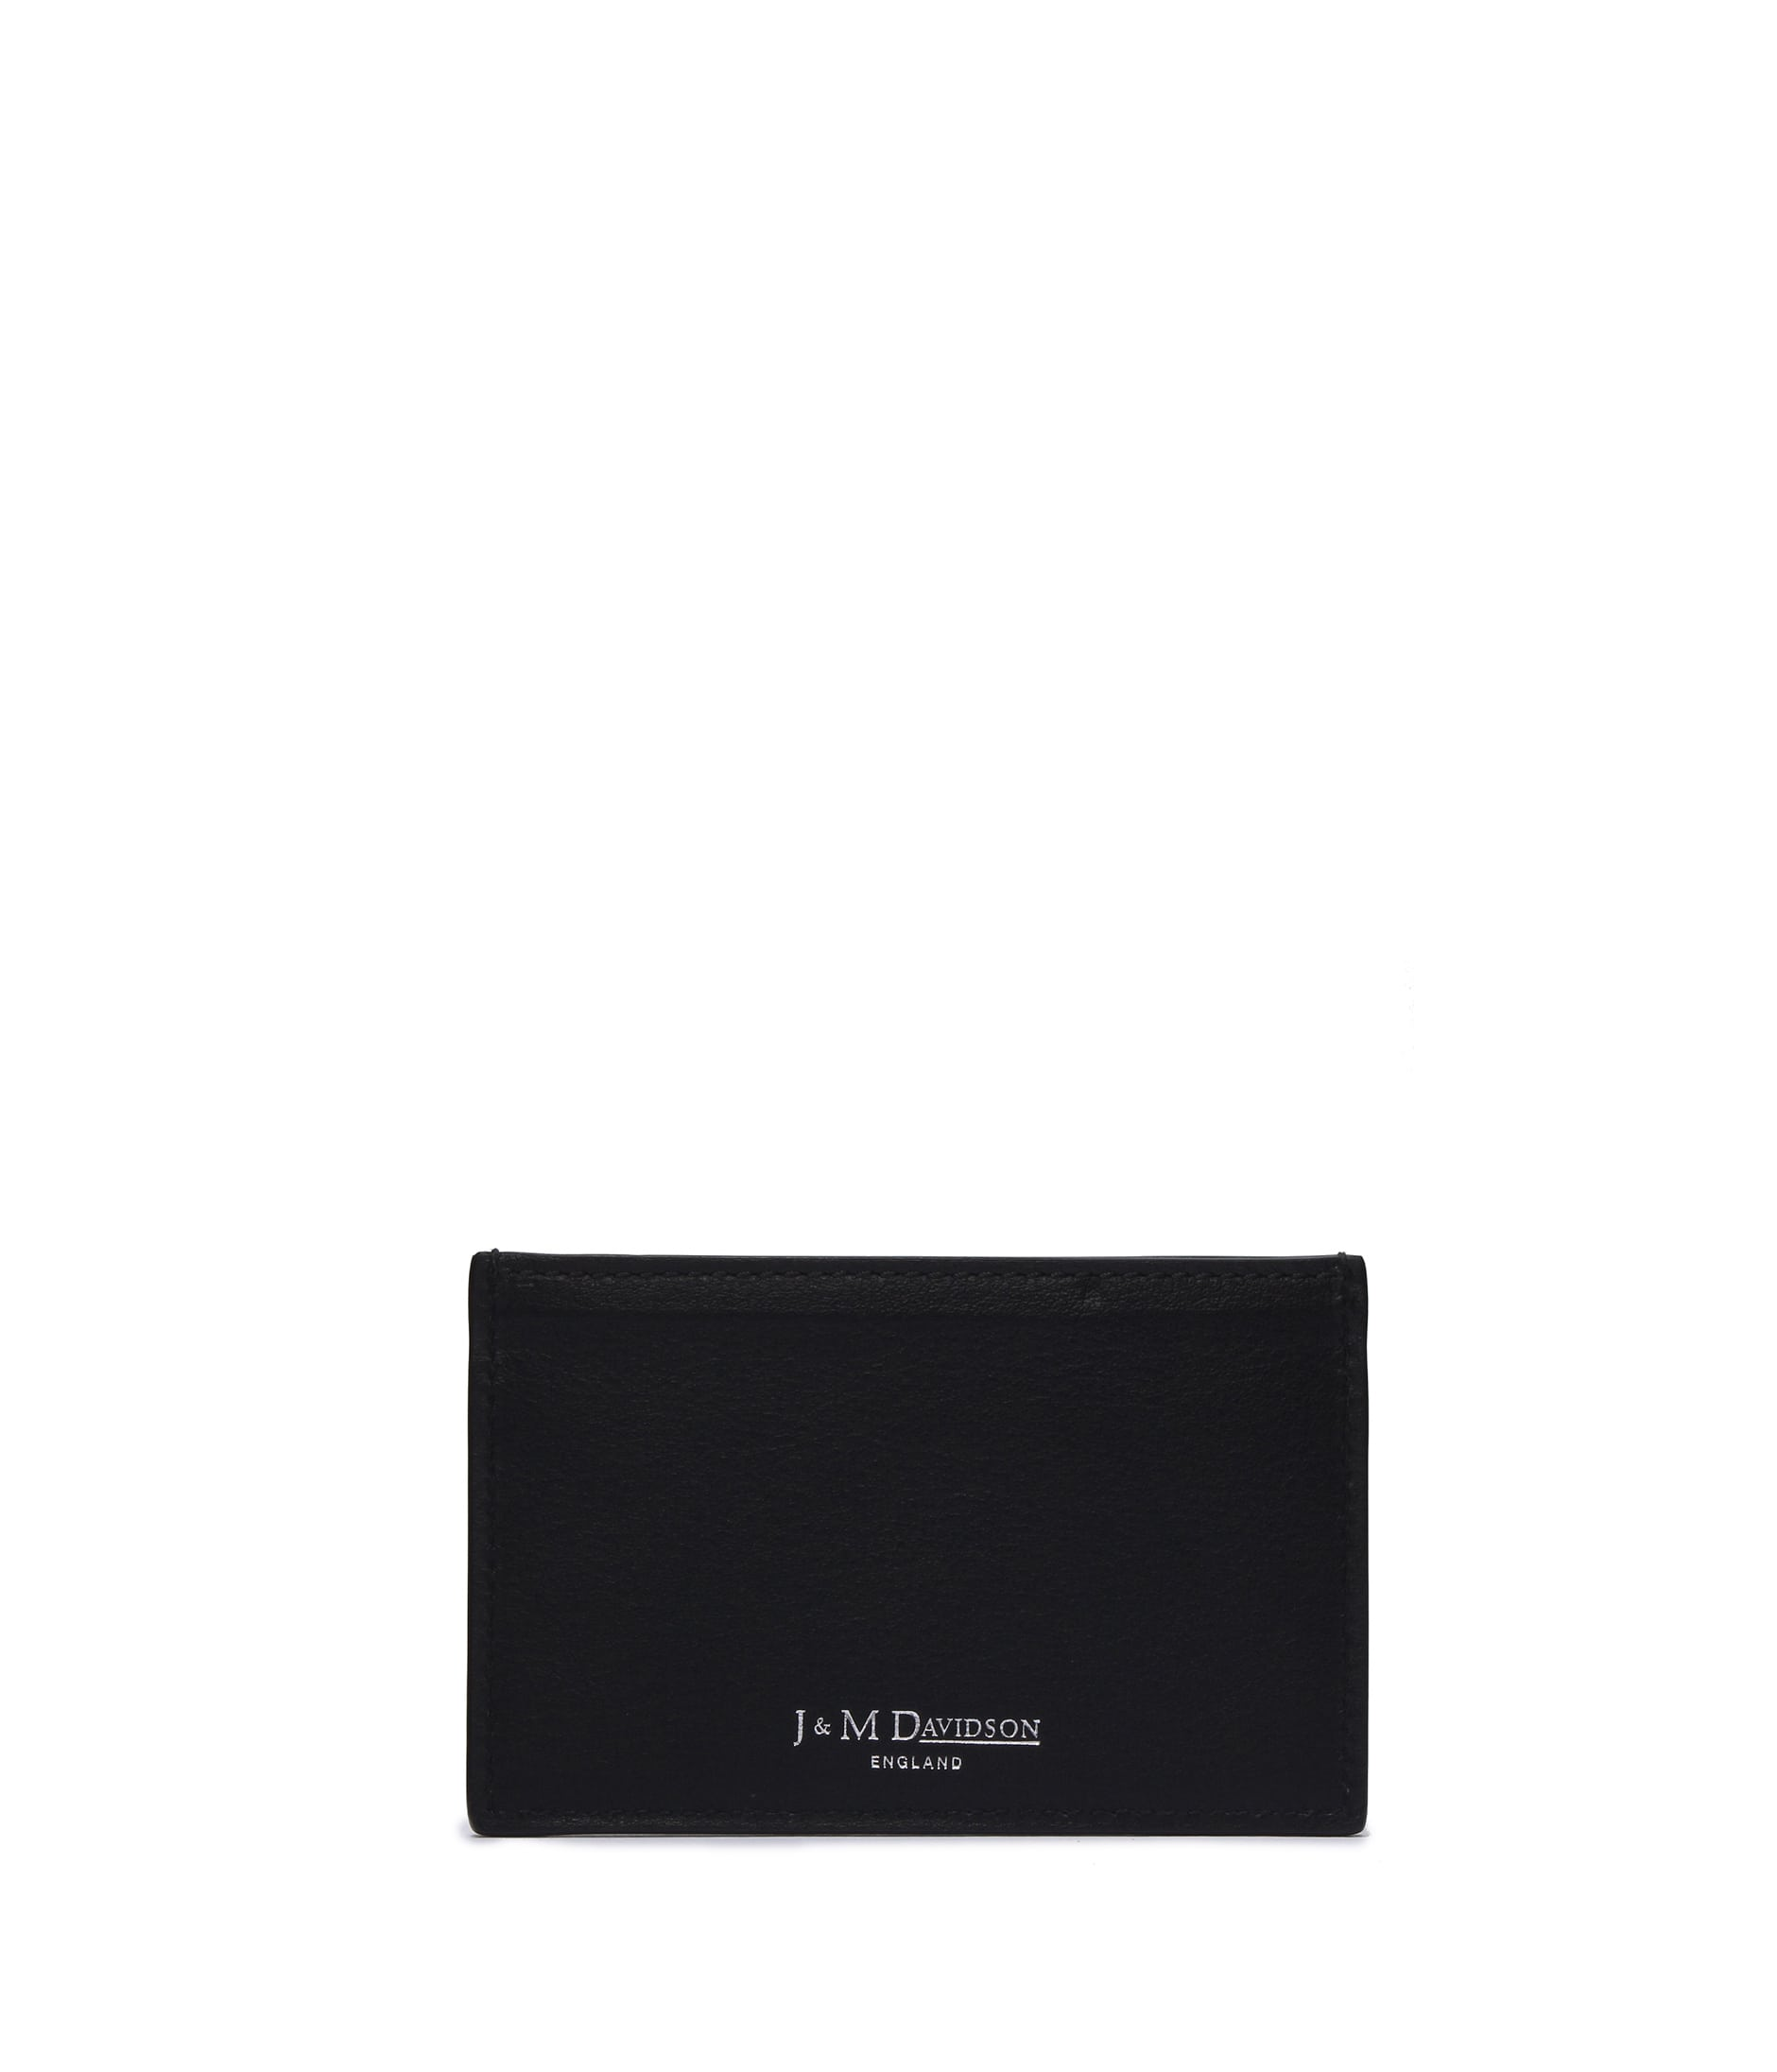 FLAT CREDIT CARD CASE WITH STUDS 詳細画像 BLACK 2